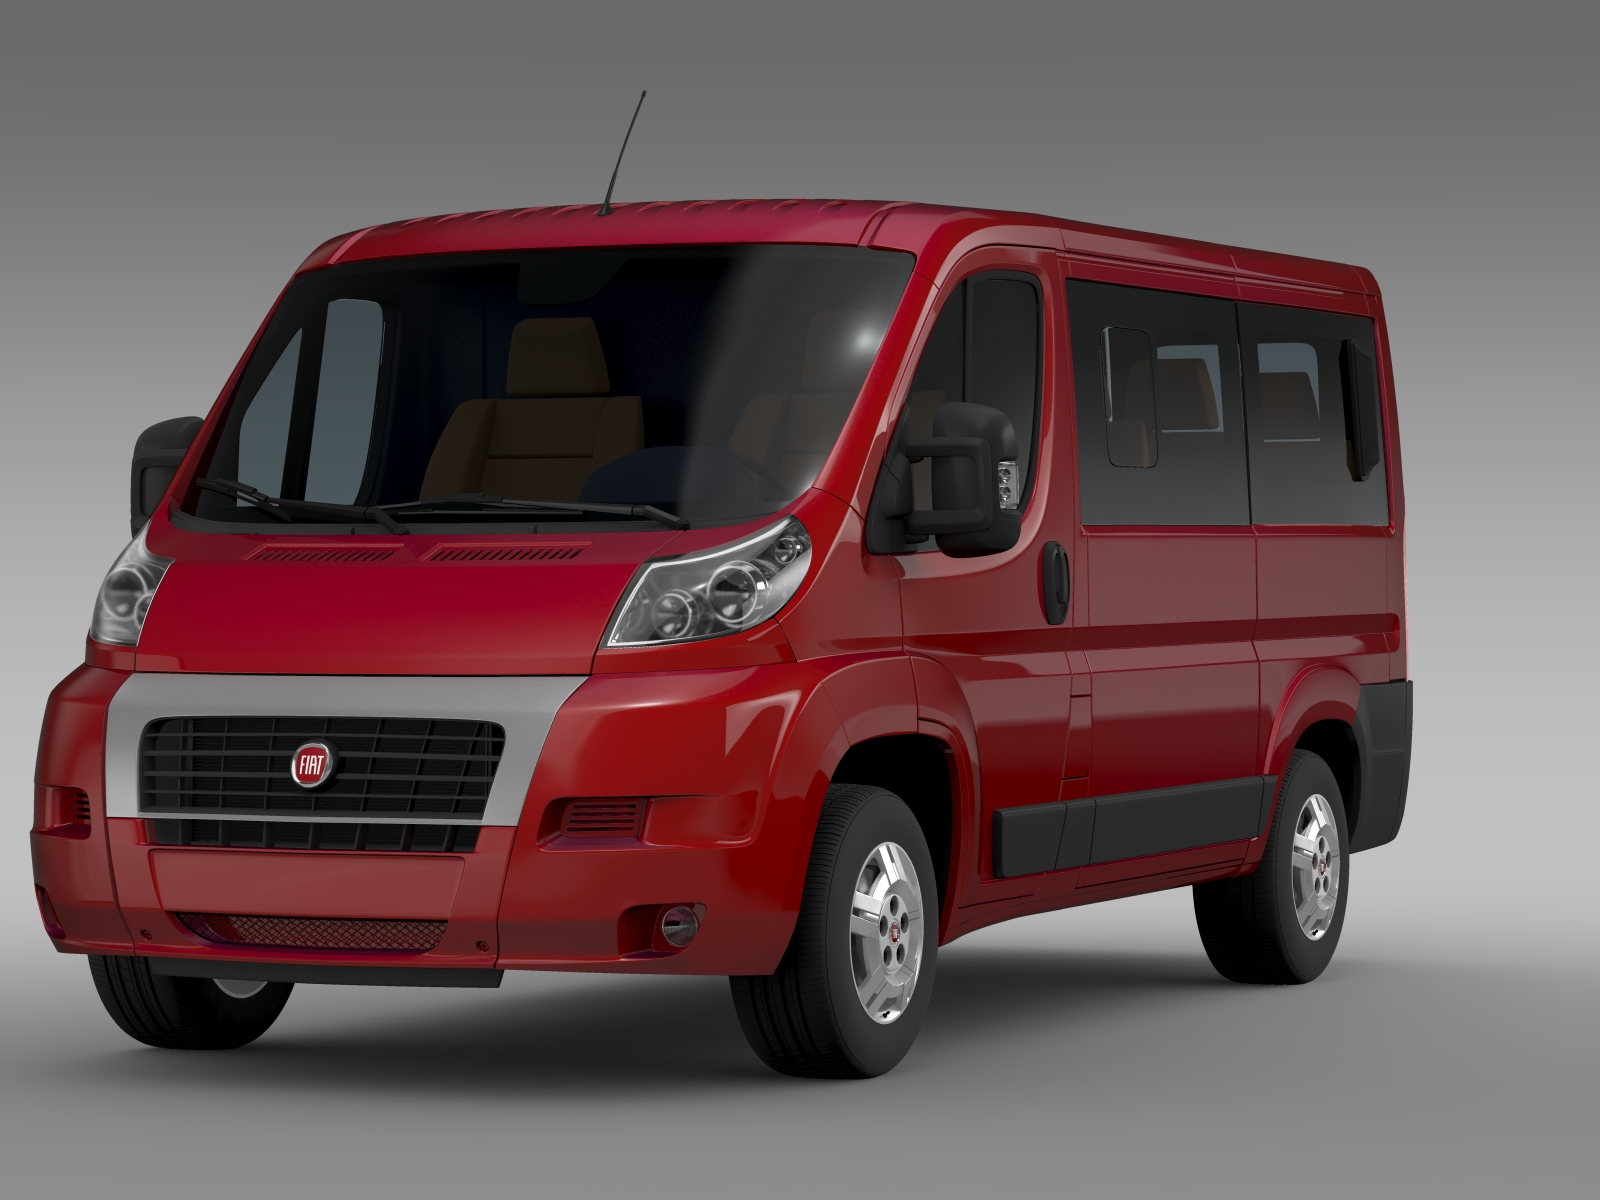 fiat ducato mini bus l1h1 2006 2014 3d model buy fiat. Black Bedroom Furniture Sets. Home Design Ideas